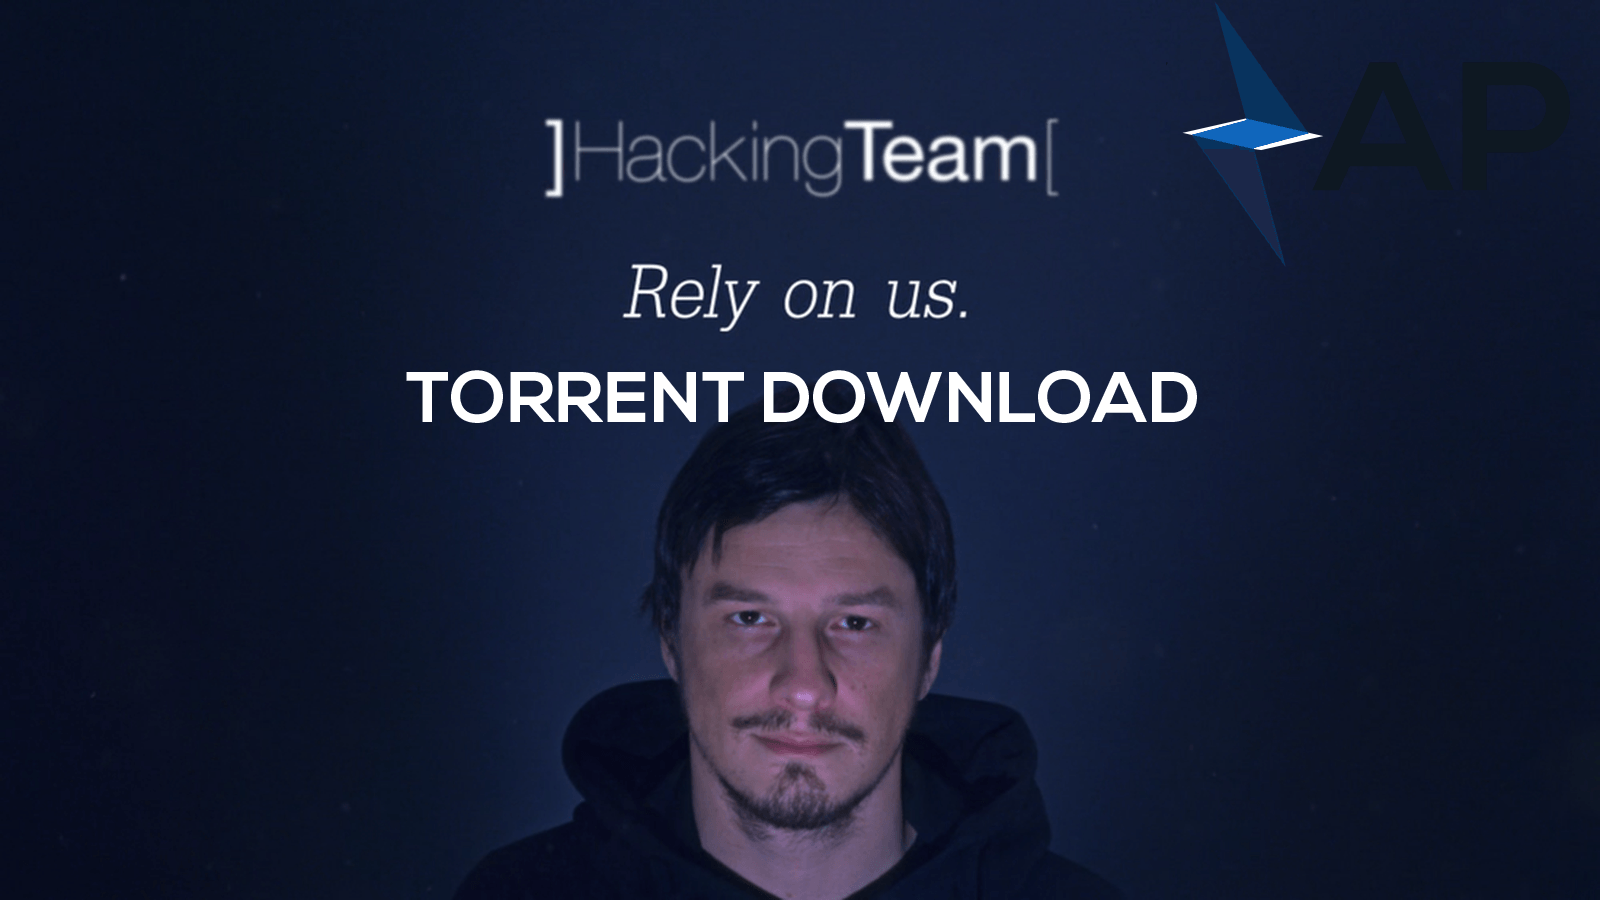 hacking team torrent